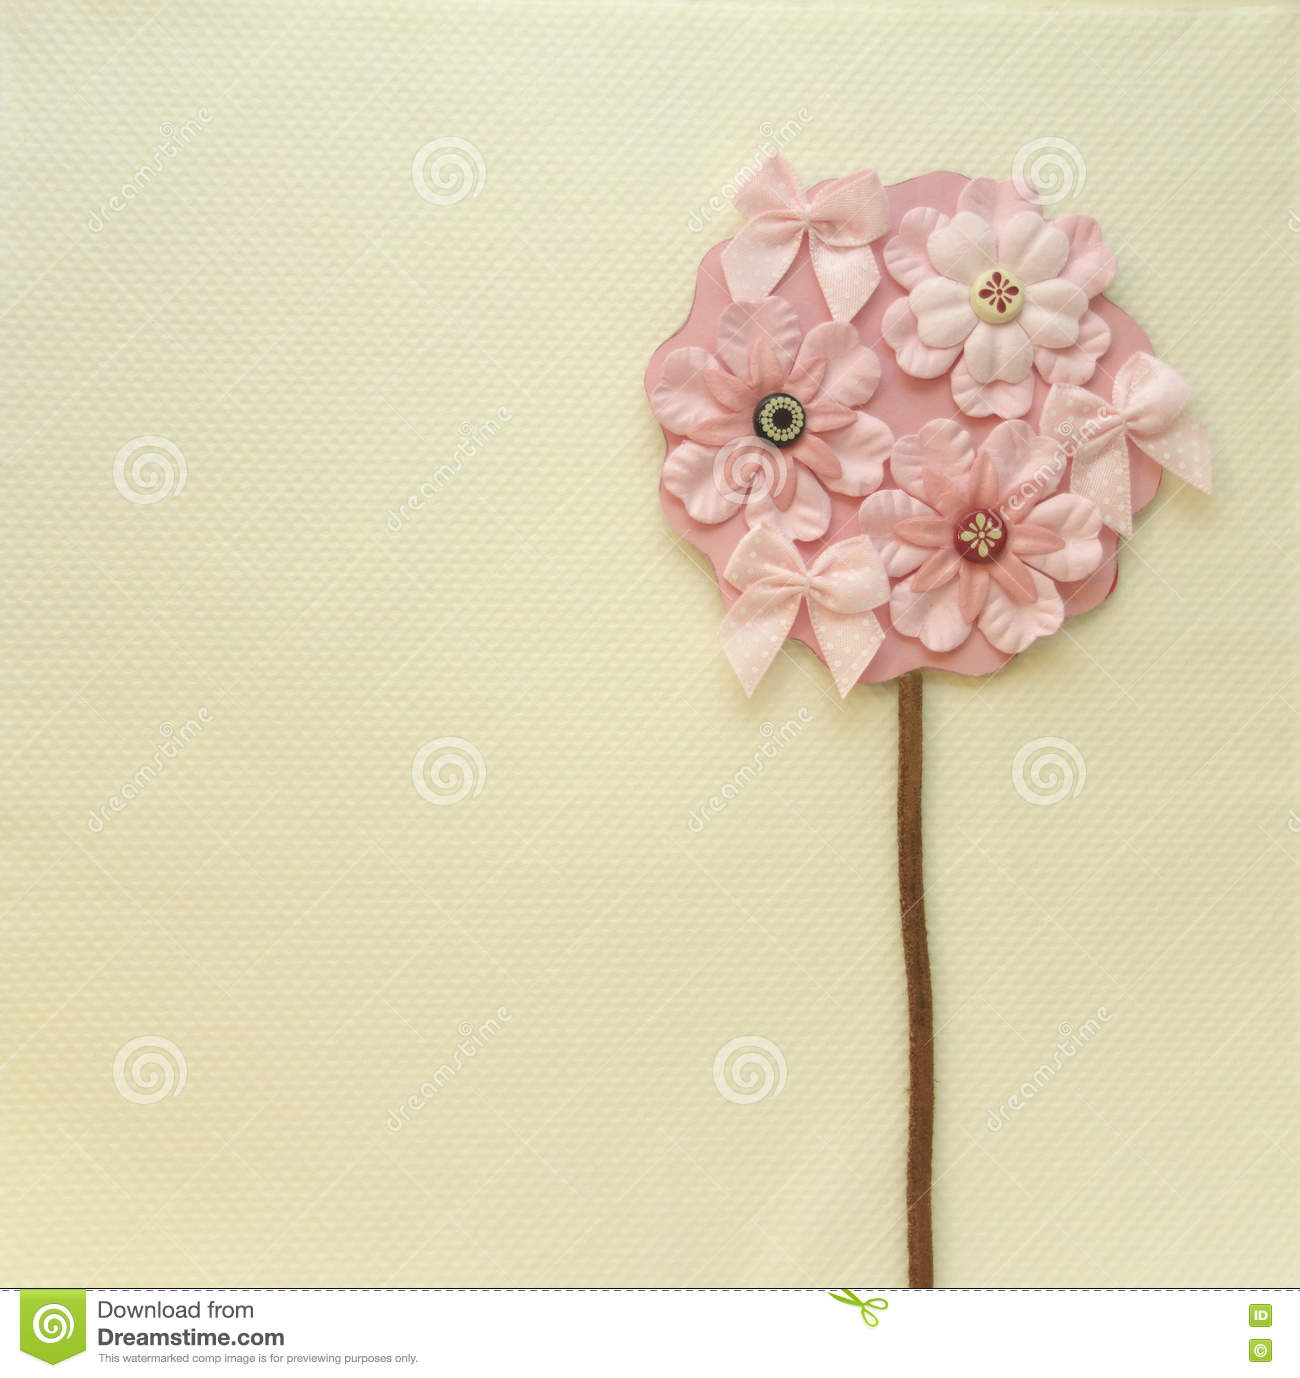 Book Cover Design Flower : Flower tree thank you card stock illustration image